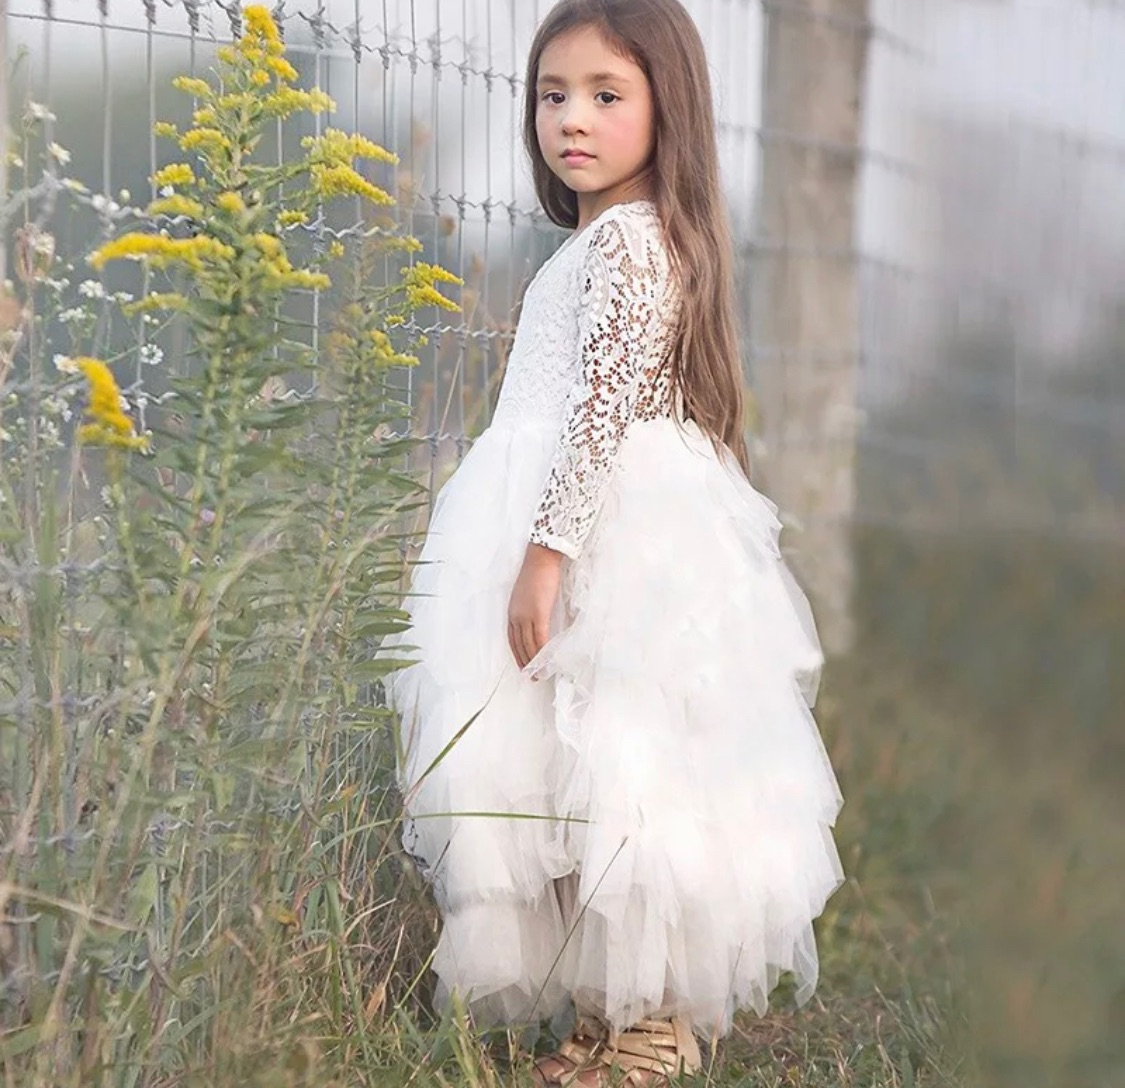 bridesmaid flowergirl white dress